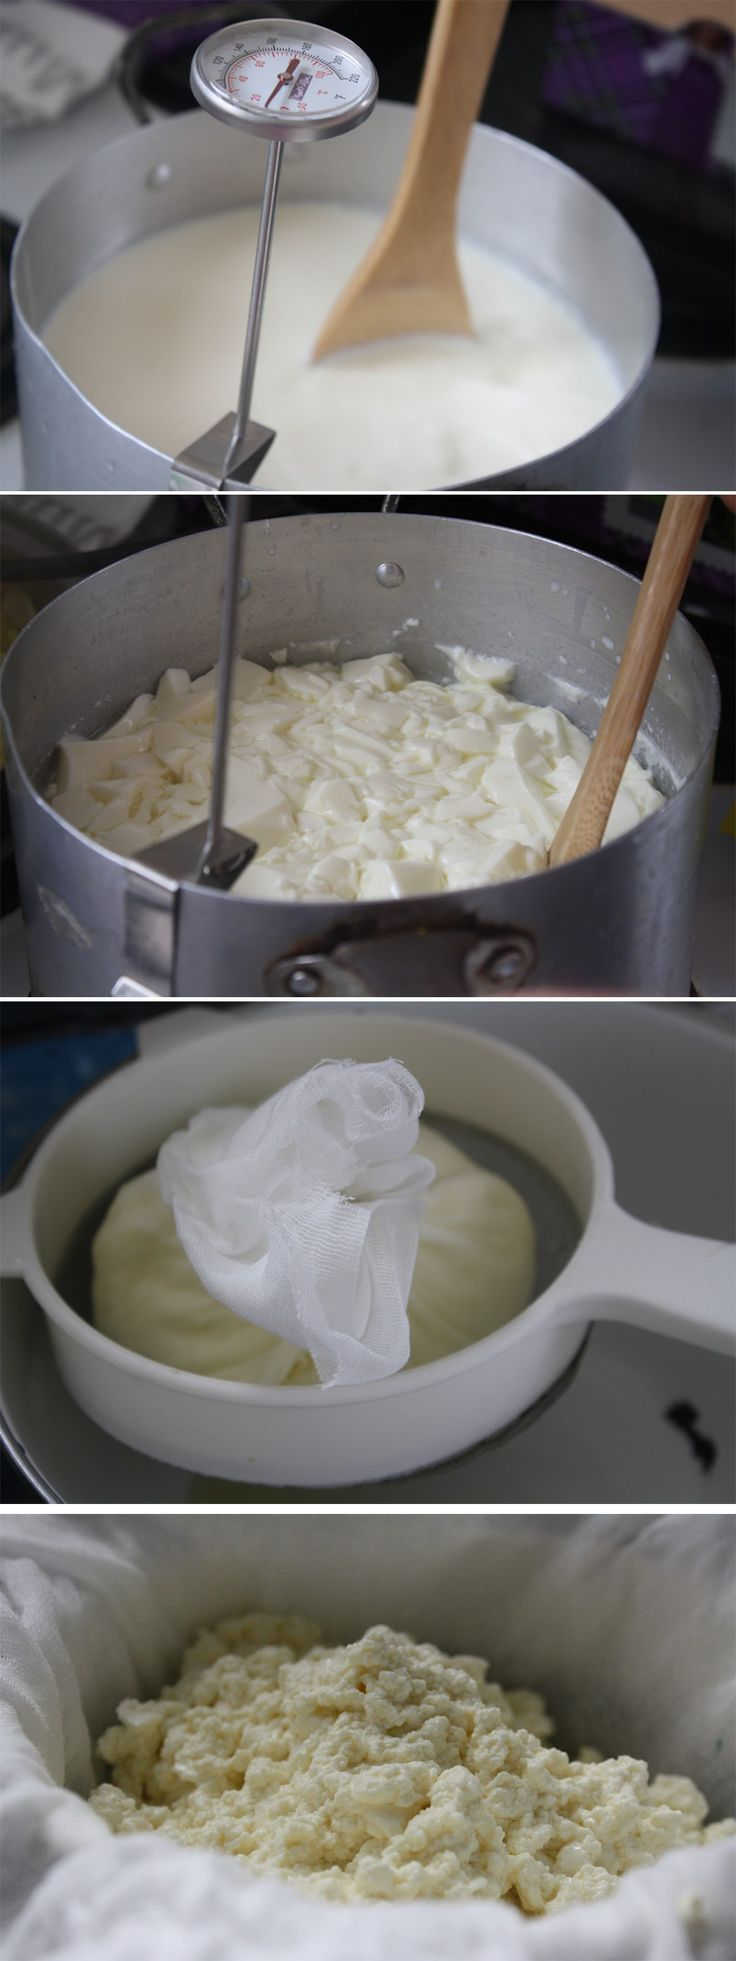 Ever thought about making your own mozzarella cheese? There are lots of DIY cheesemaking kits for you to make mozzarella at home. Here's what happened when I  tried to make mozzarella in my own kitchen